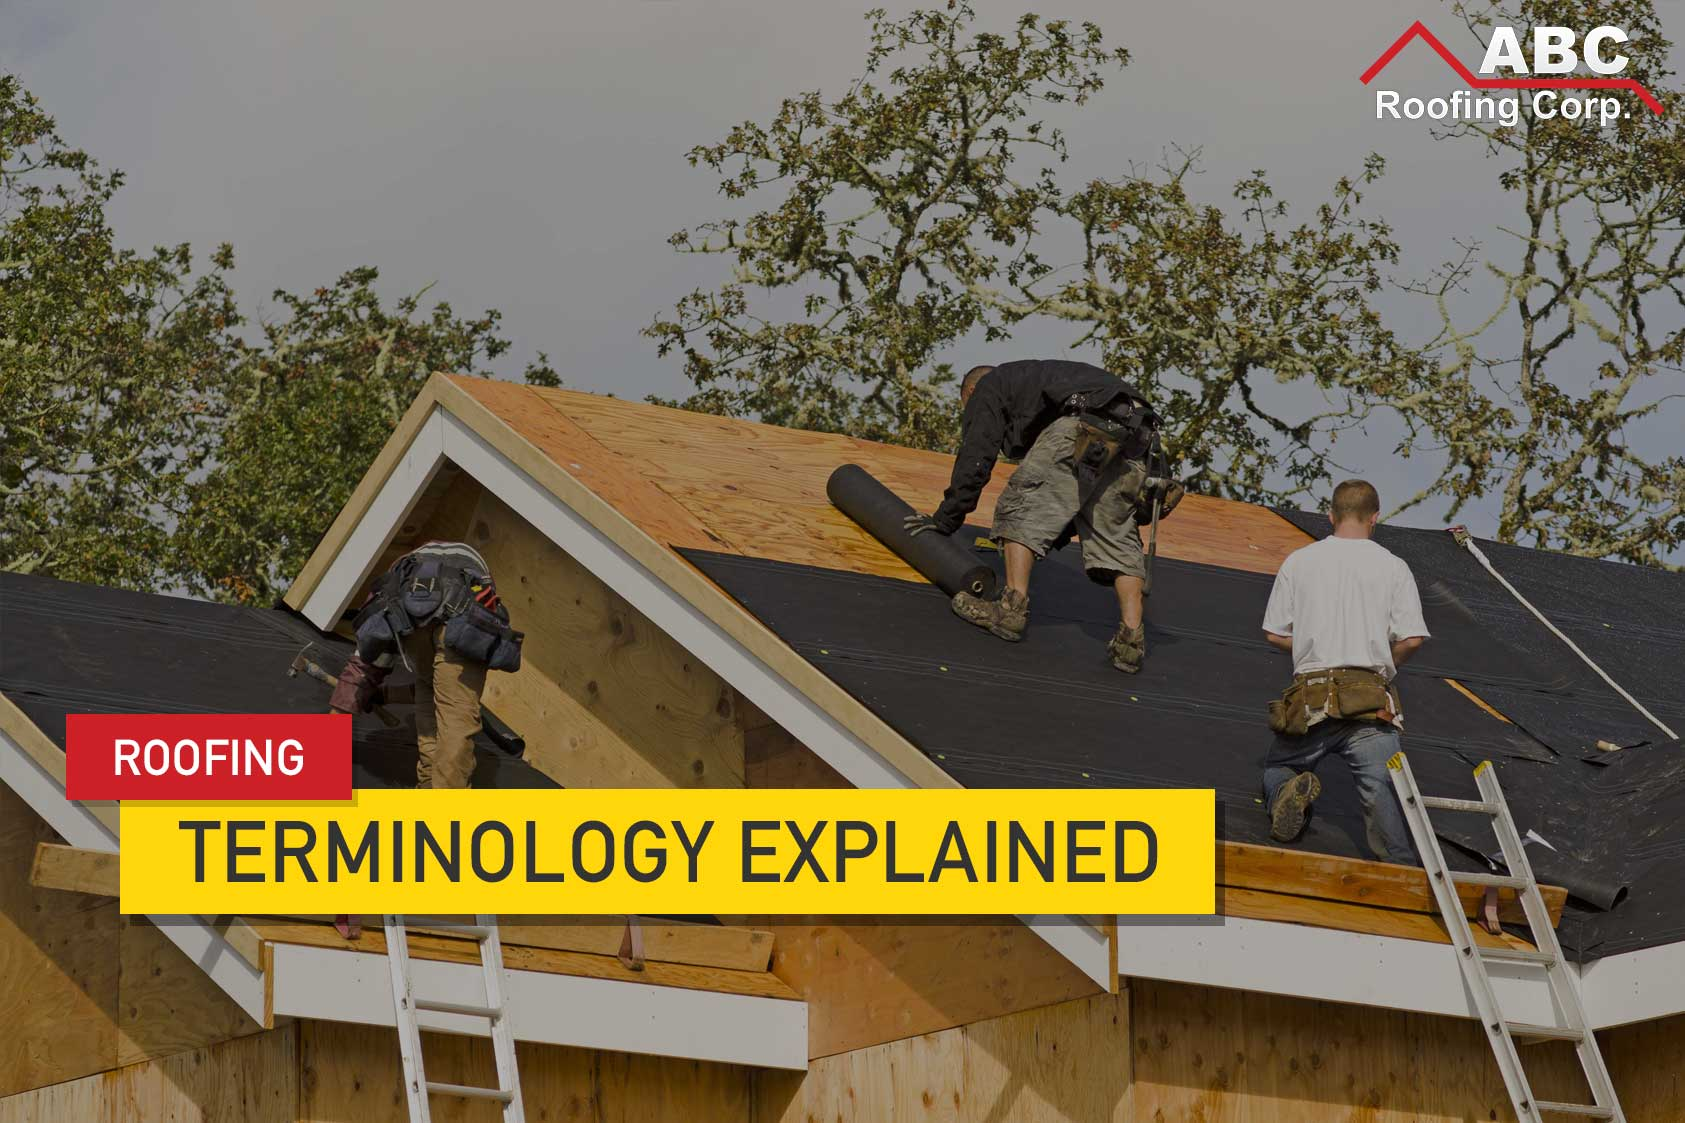 Roofing Terminology Explained